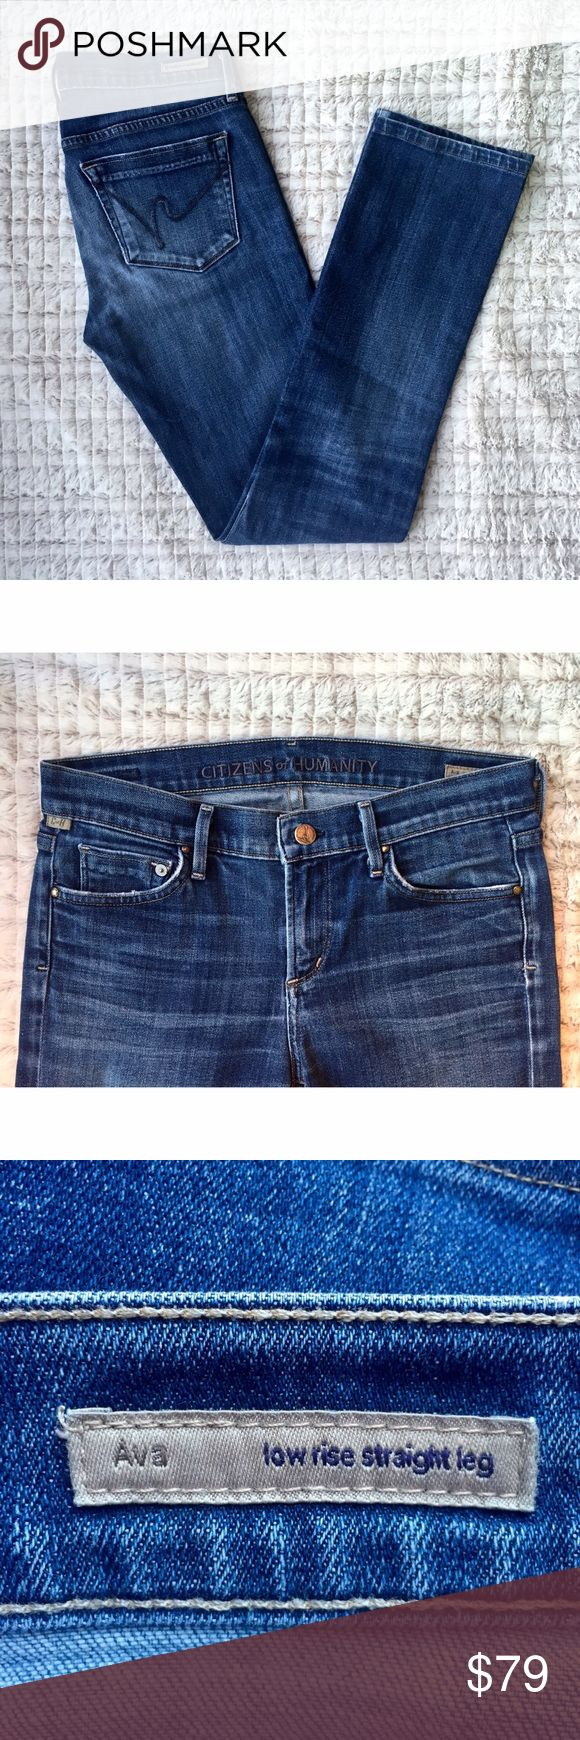 """FLASH SALE Citizens of Humanity Straight Leg Citizens of Humanity Ava Straight Leg Sz 28 98% cotton , 2% polyurethane. 14"""" / 36 cm in the knee and 14"""" / 36 cm at the leg opening. Whiskering along front pockets. Fading along front of pant and back pockets. $195 Citizens of Humanity Jeans Straight Leg"""